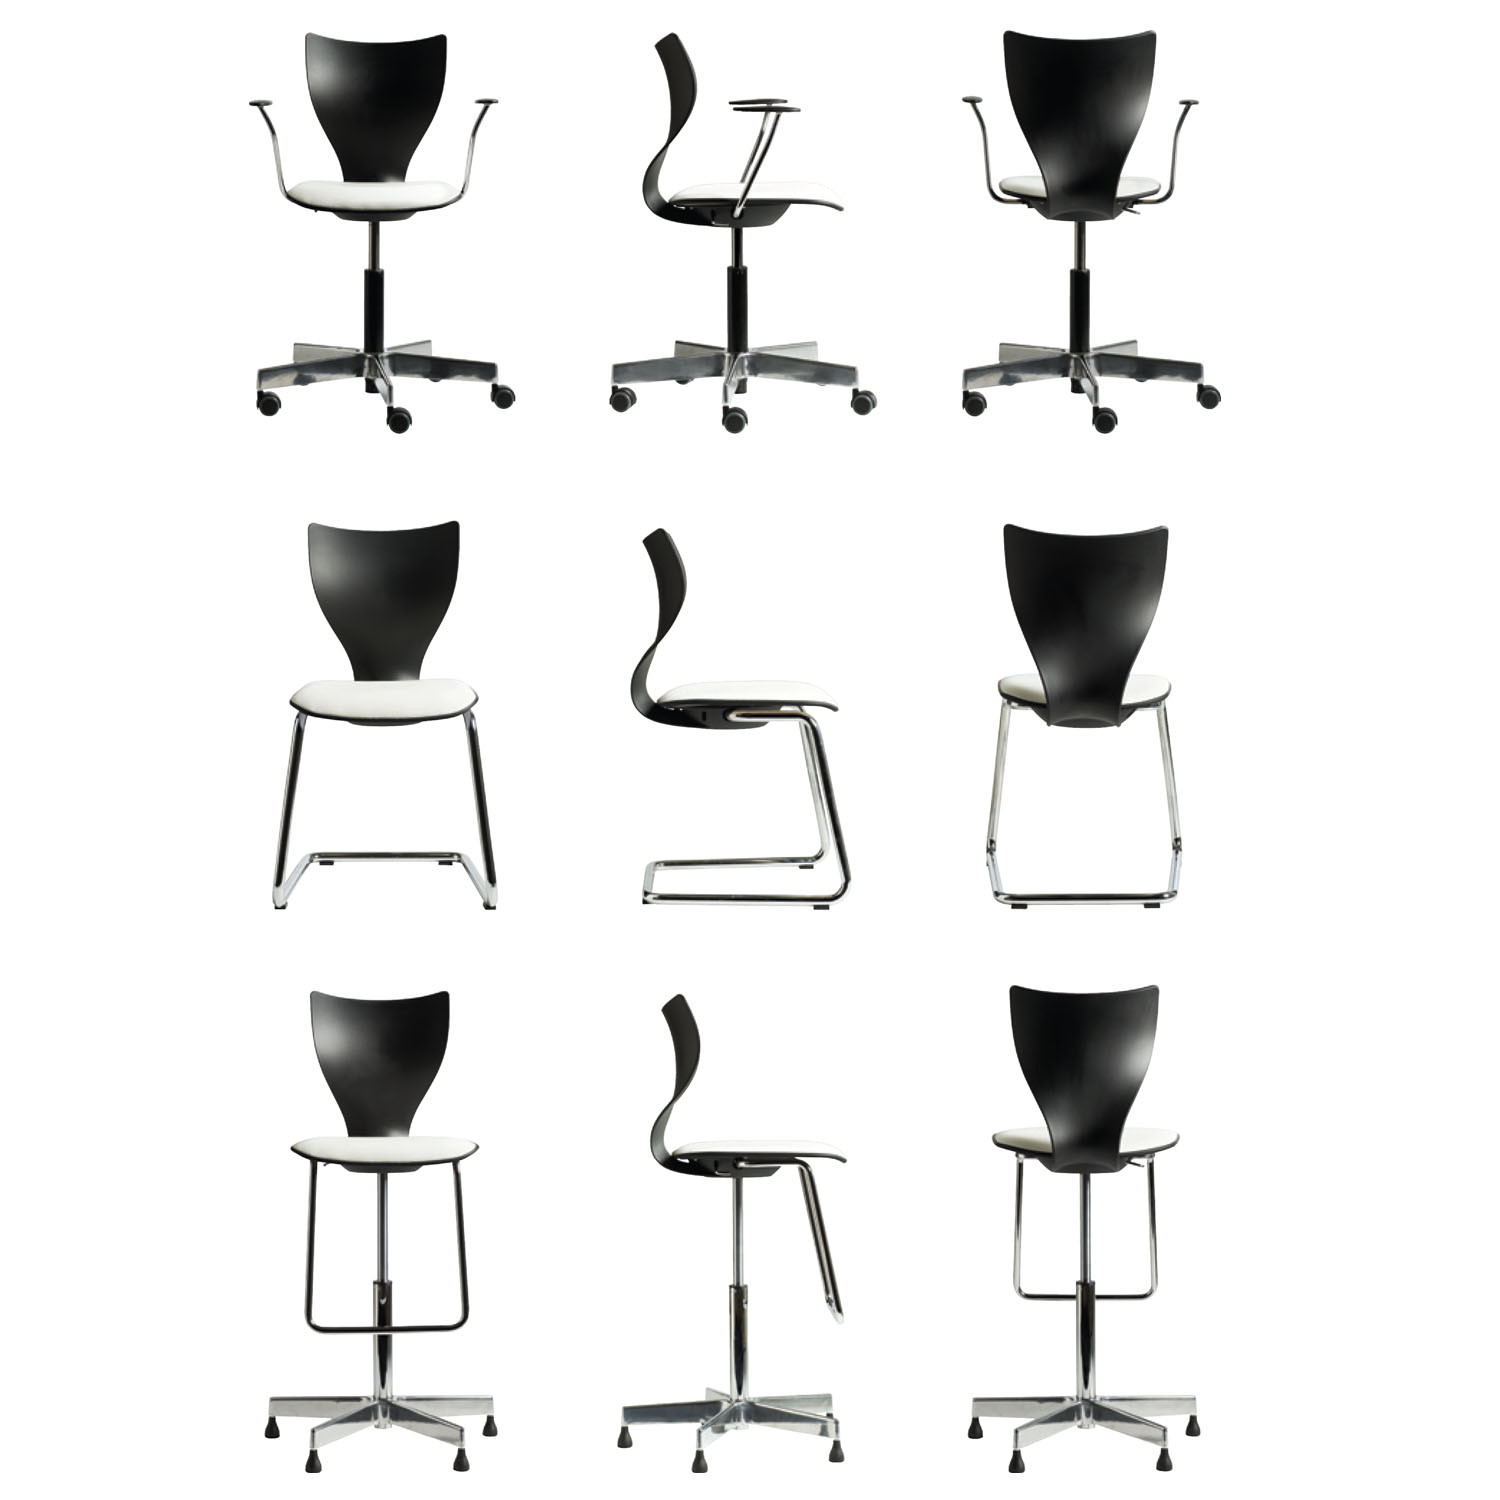 Cobra Swivel Chairs